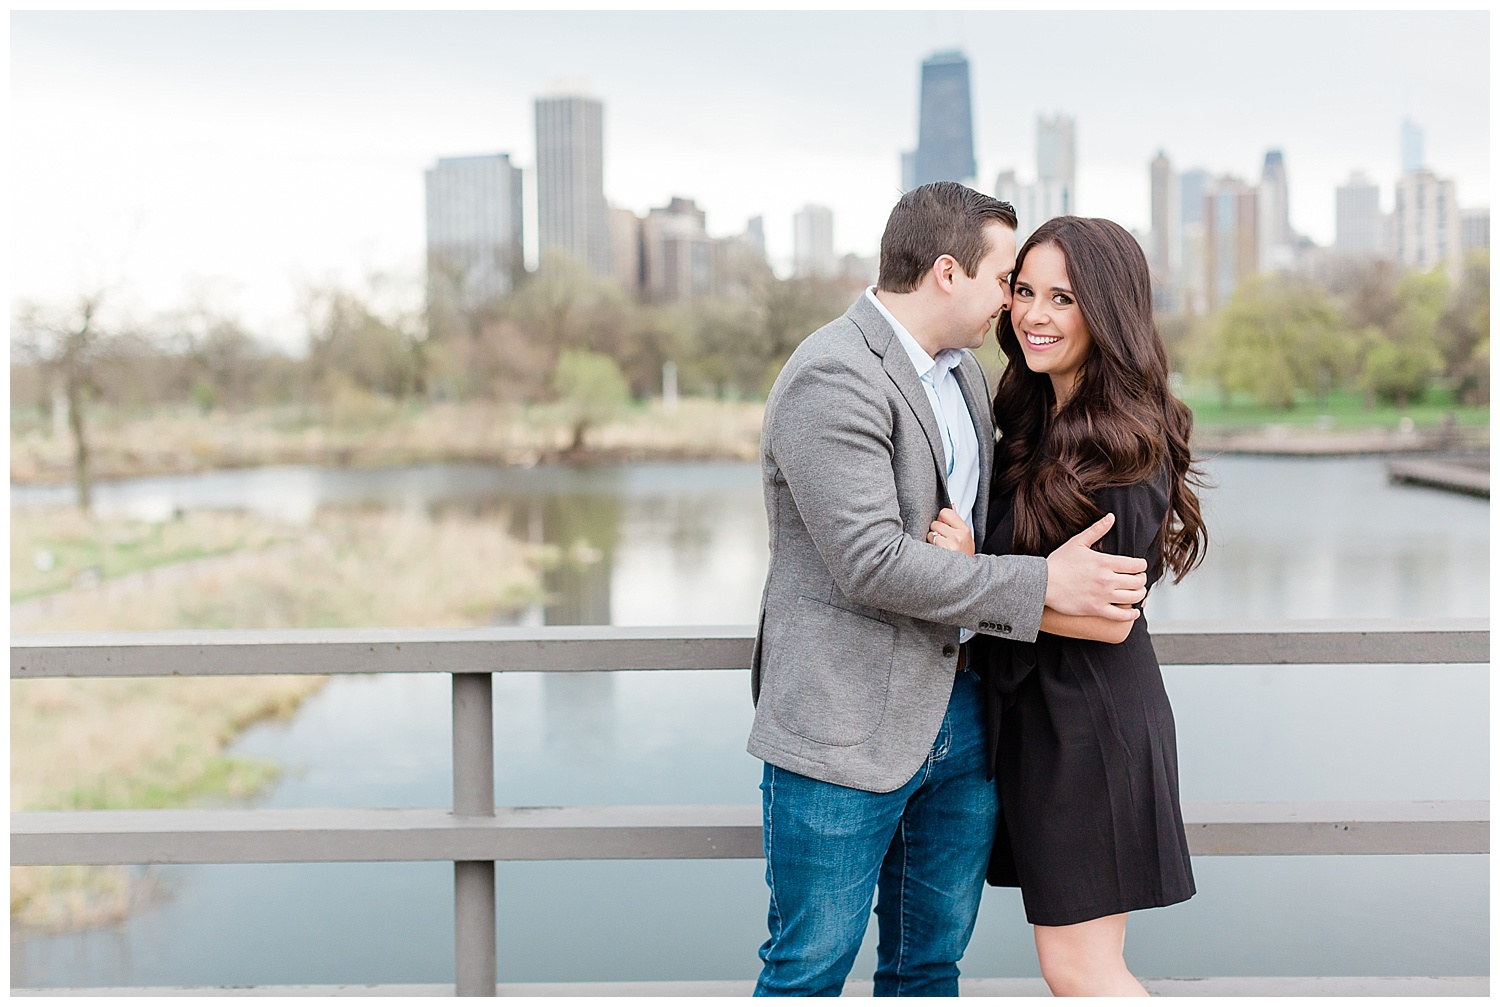 classic-downtown-chicago-engagement-session-kristen-cloyd-photography_0008.jpg